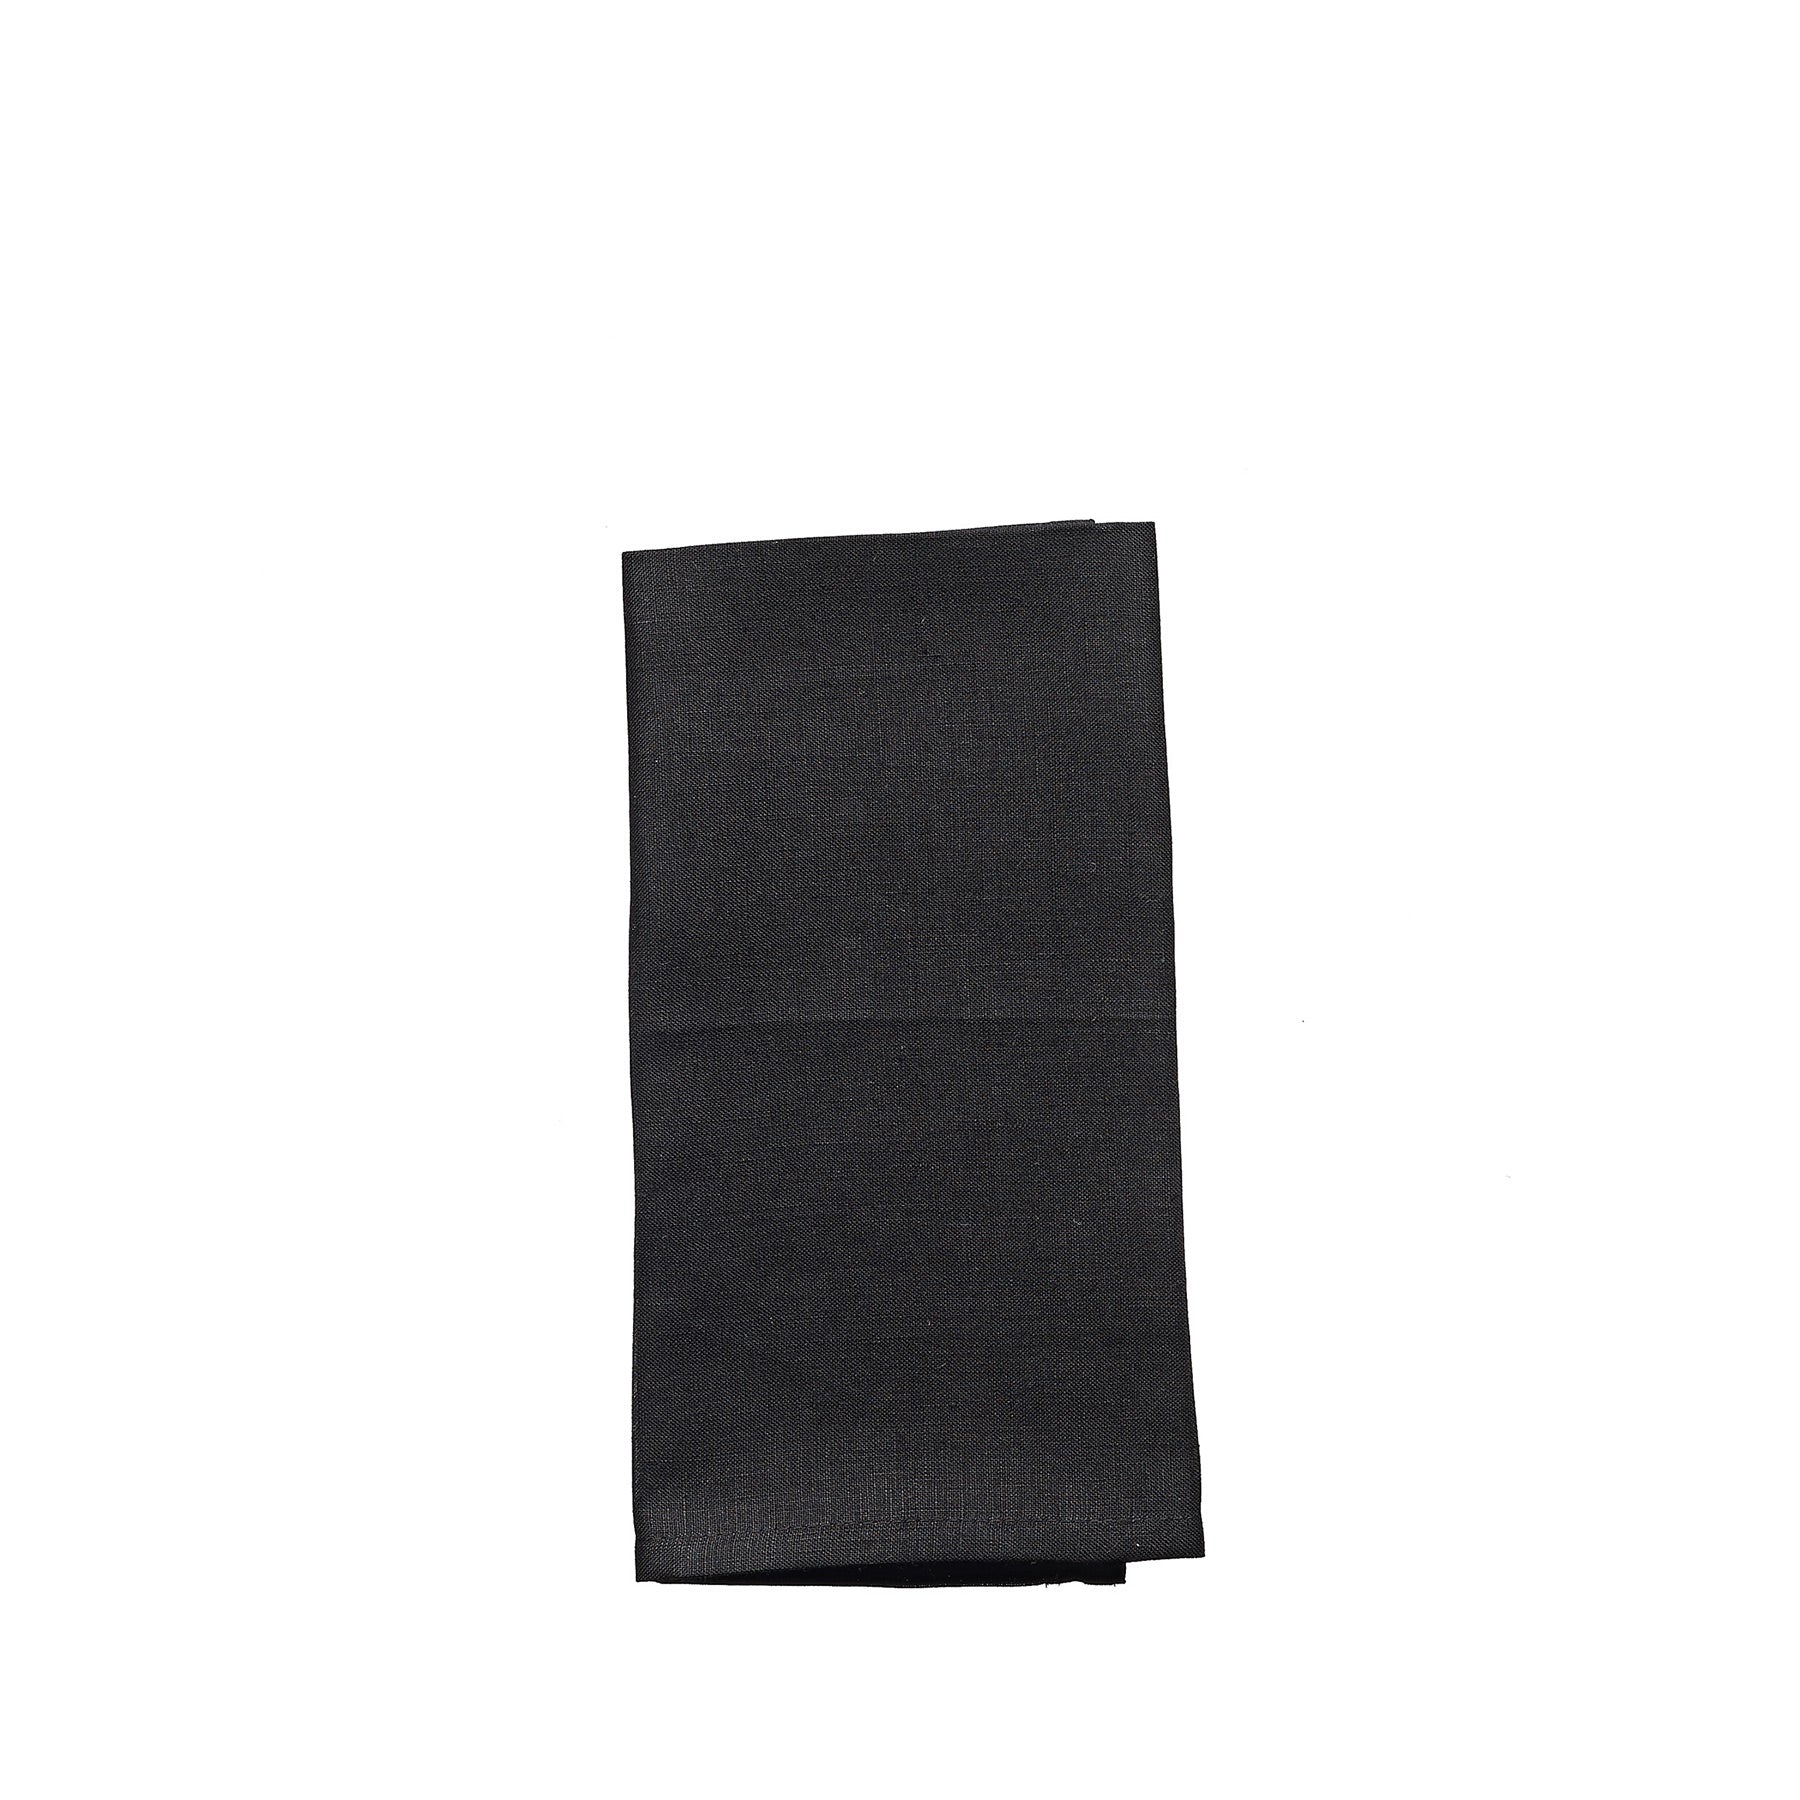 Linen Vence Everyday Napkins - Black